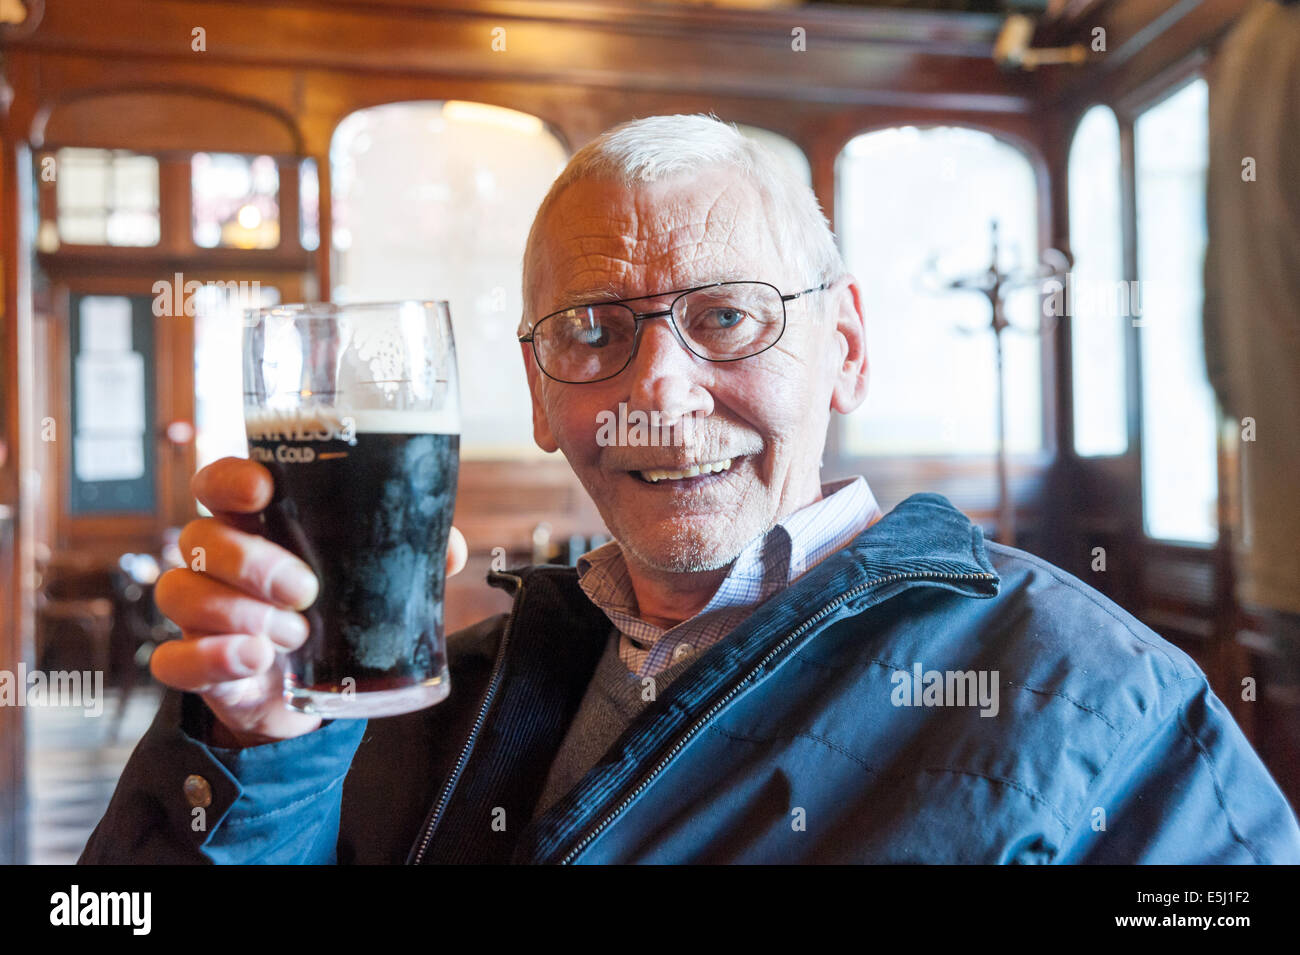 Elderly man drinking pint of Guinness in a pub, UK - Stock Image